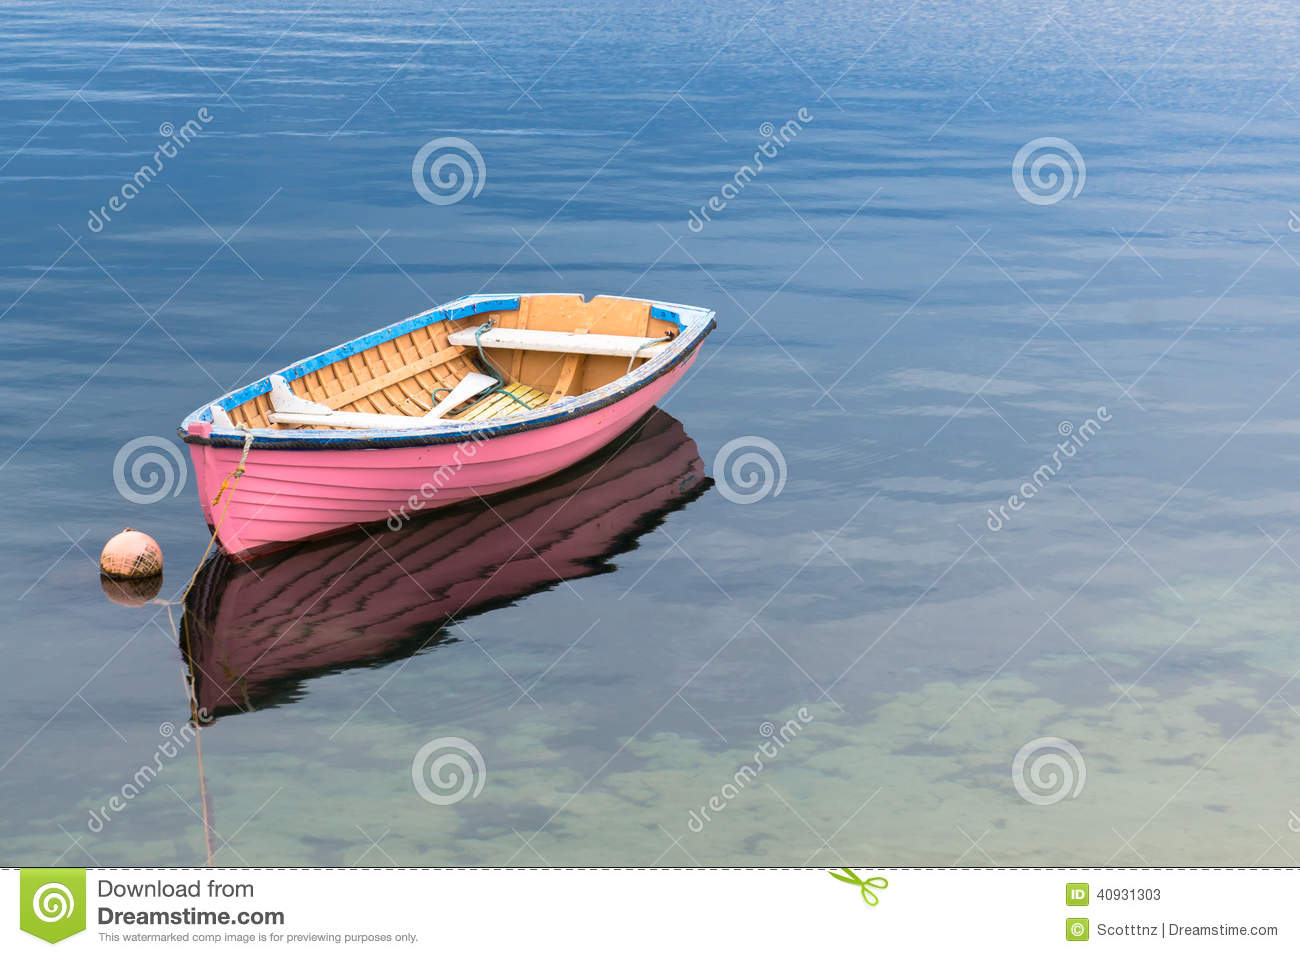 A Single Pink Boat In Clear Blue Water Stock Image - Image of aqua, wood: 40931303